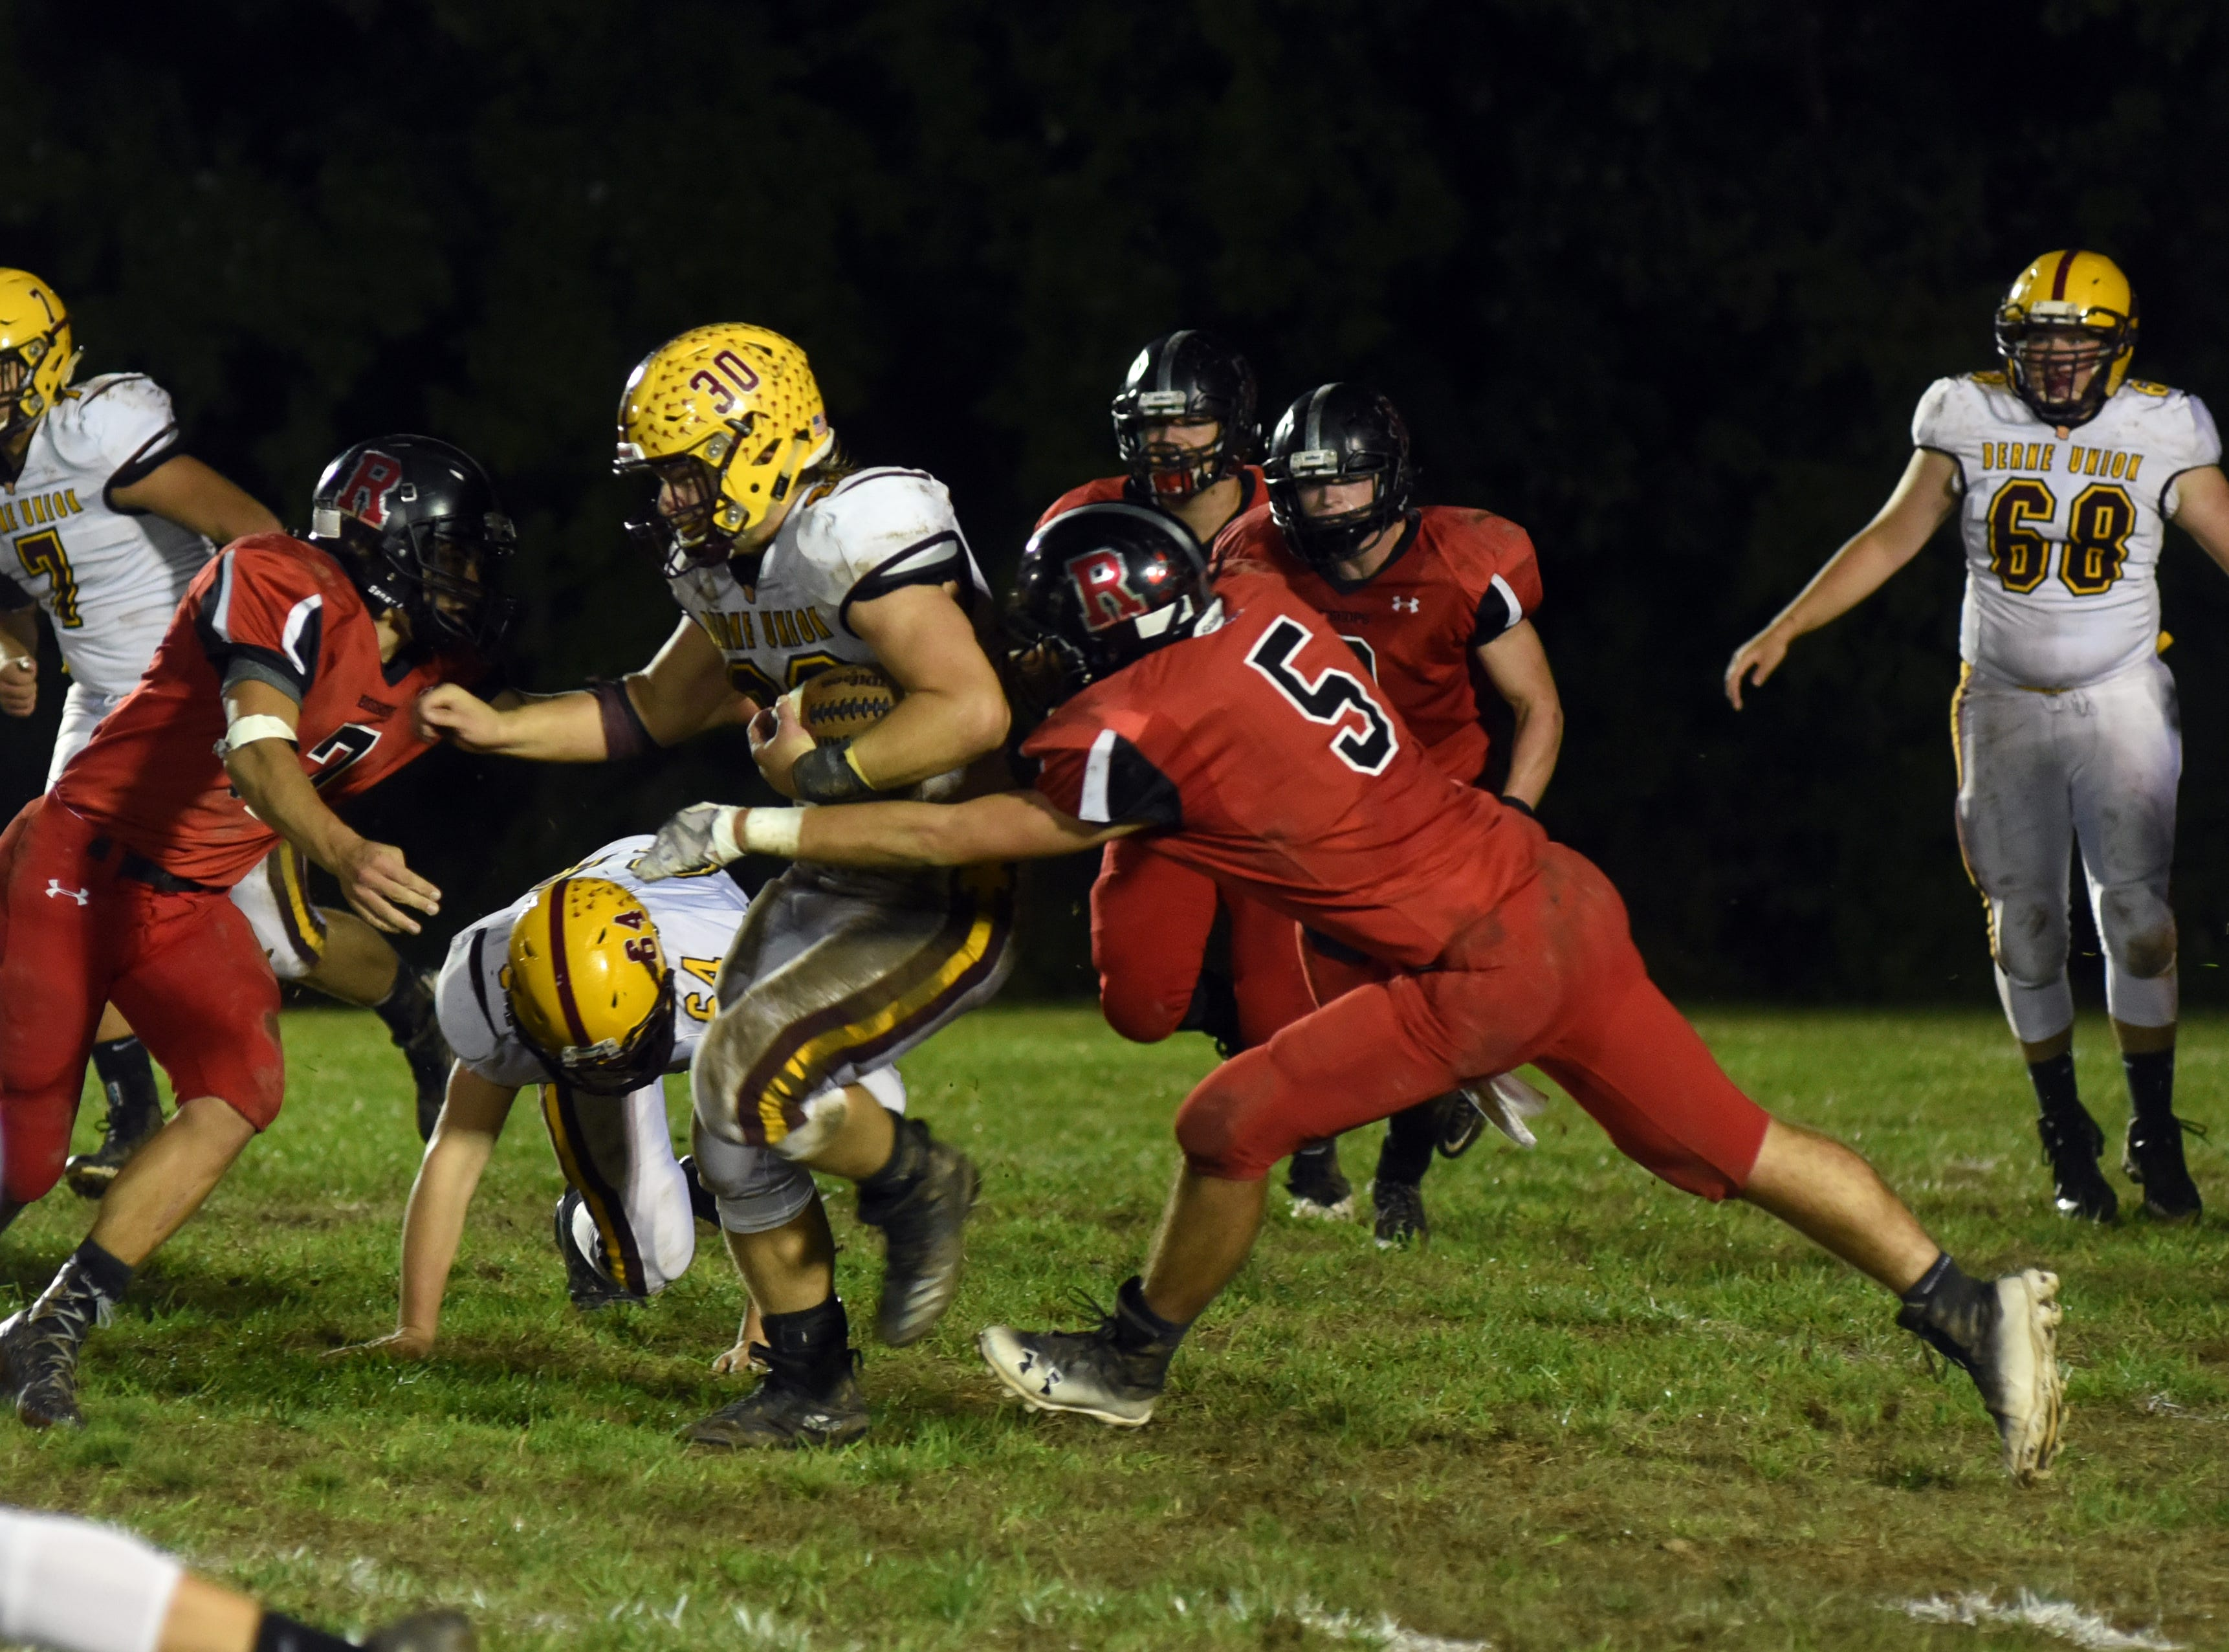 Berne Union's Chaz Dickerson runs, as Rosecrans' Marcus Browning (5) and Carter Dosch (7) try to make a tackle.